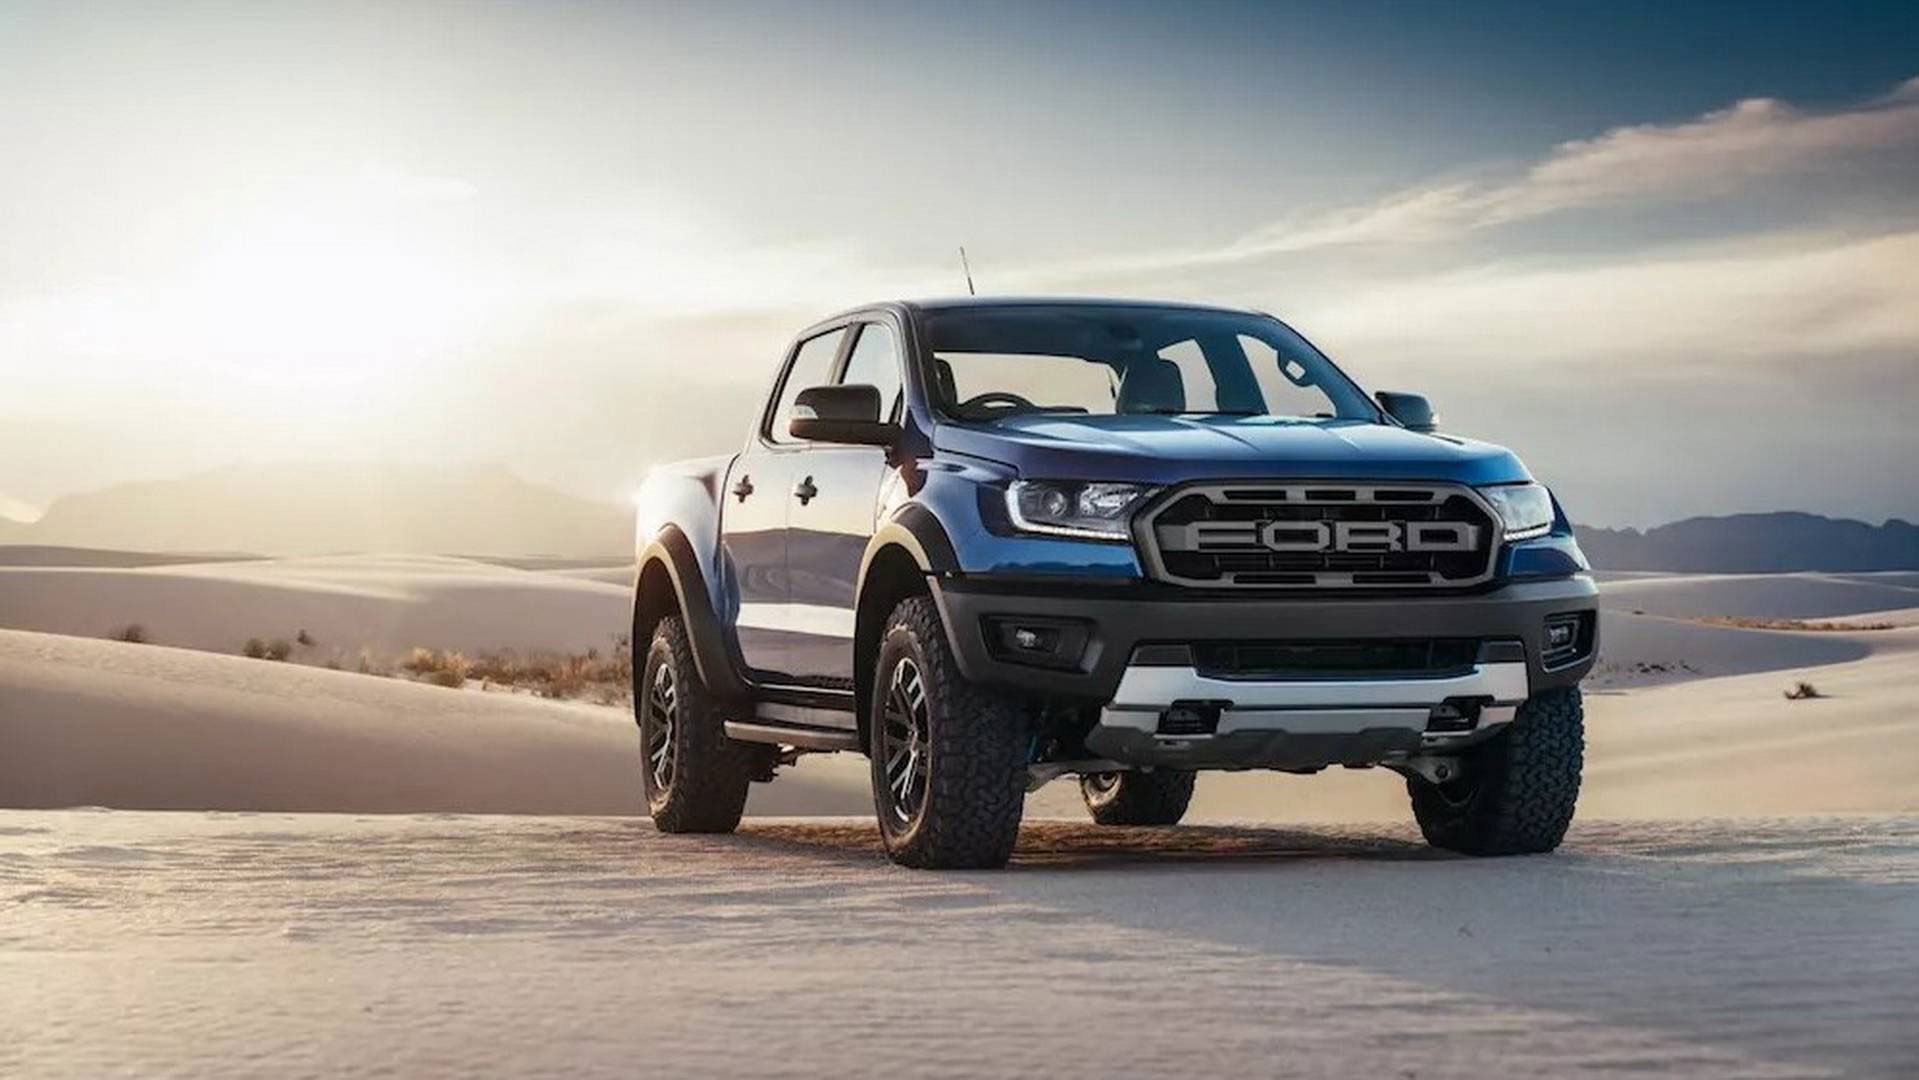 Truck Trade In Value >> How To Get The Best Trade In Value For A Used Car Cairns